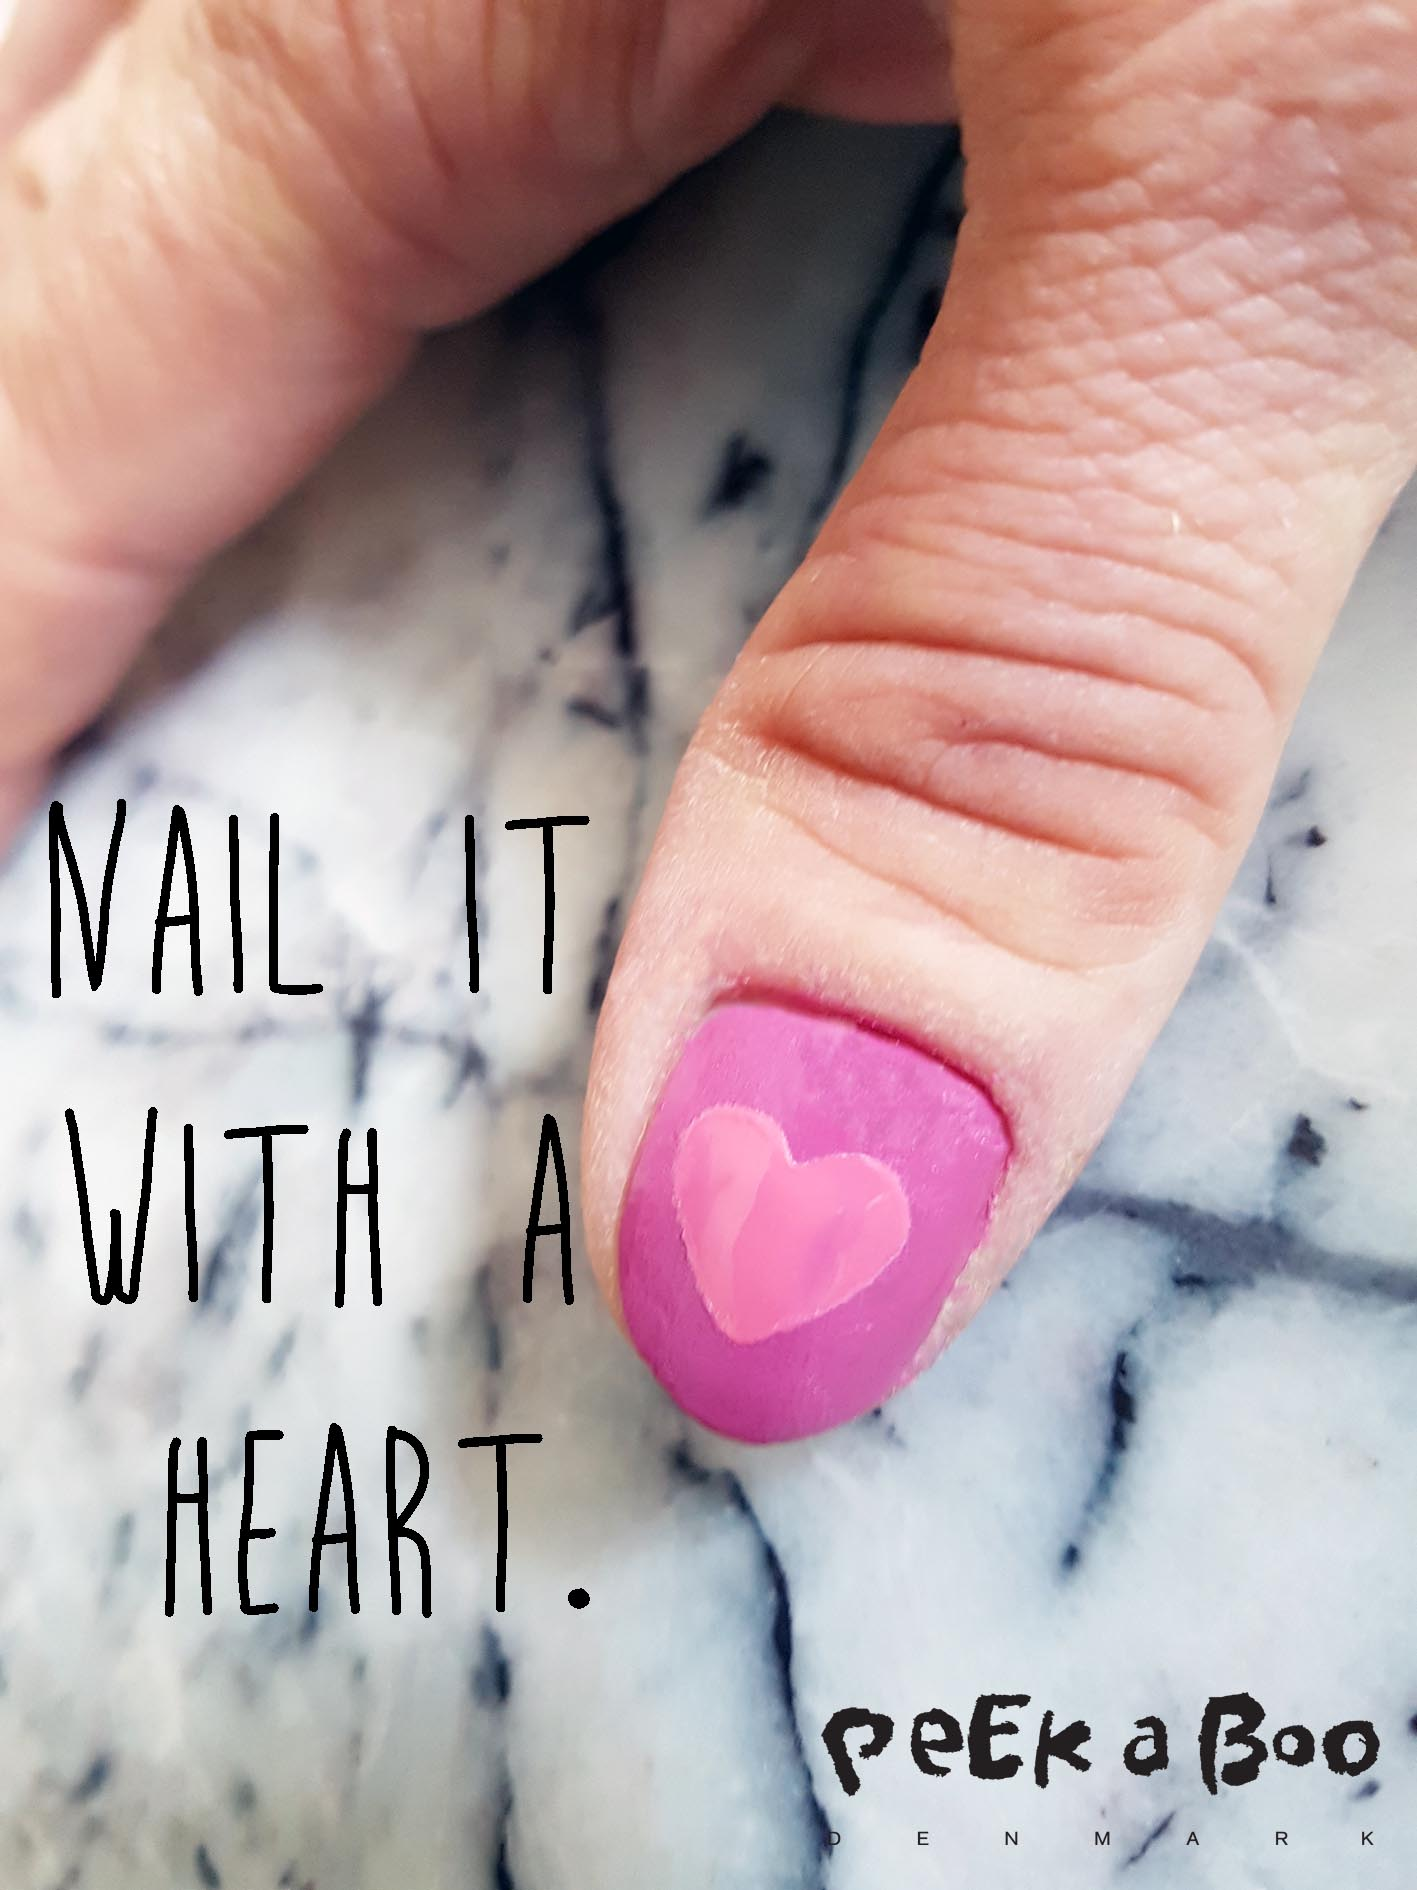 The finished heart nails.